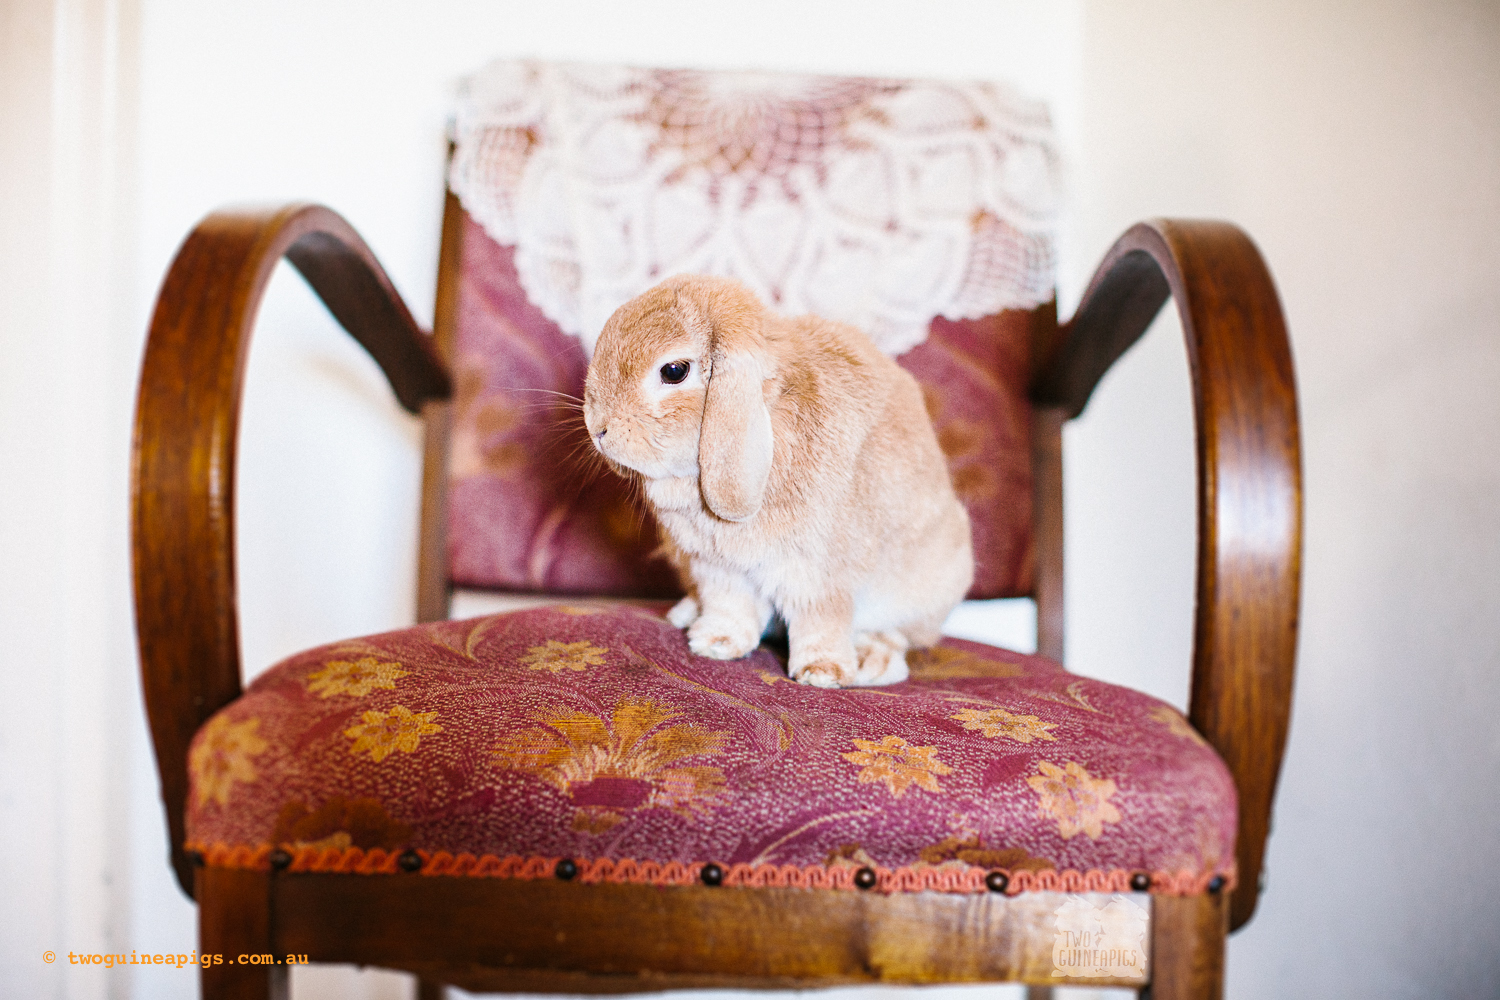 twoguineapigs_pet_photography_waffles_lop_eared_bunny_1500-5.jpg